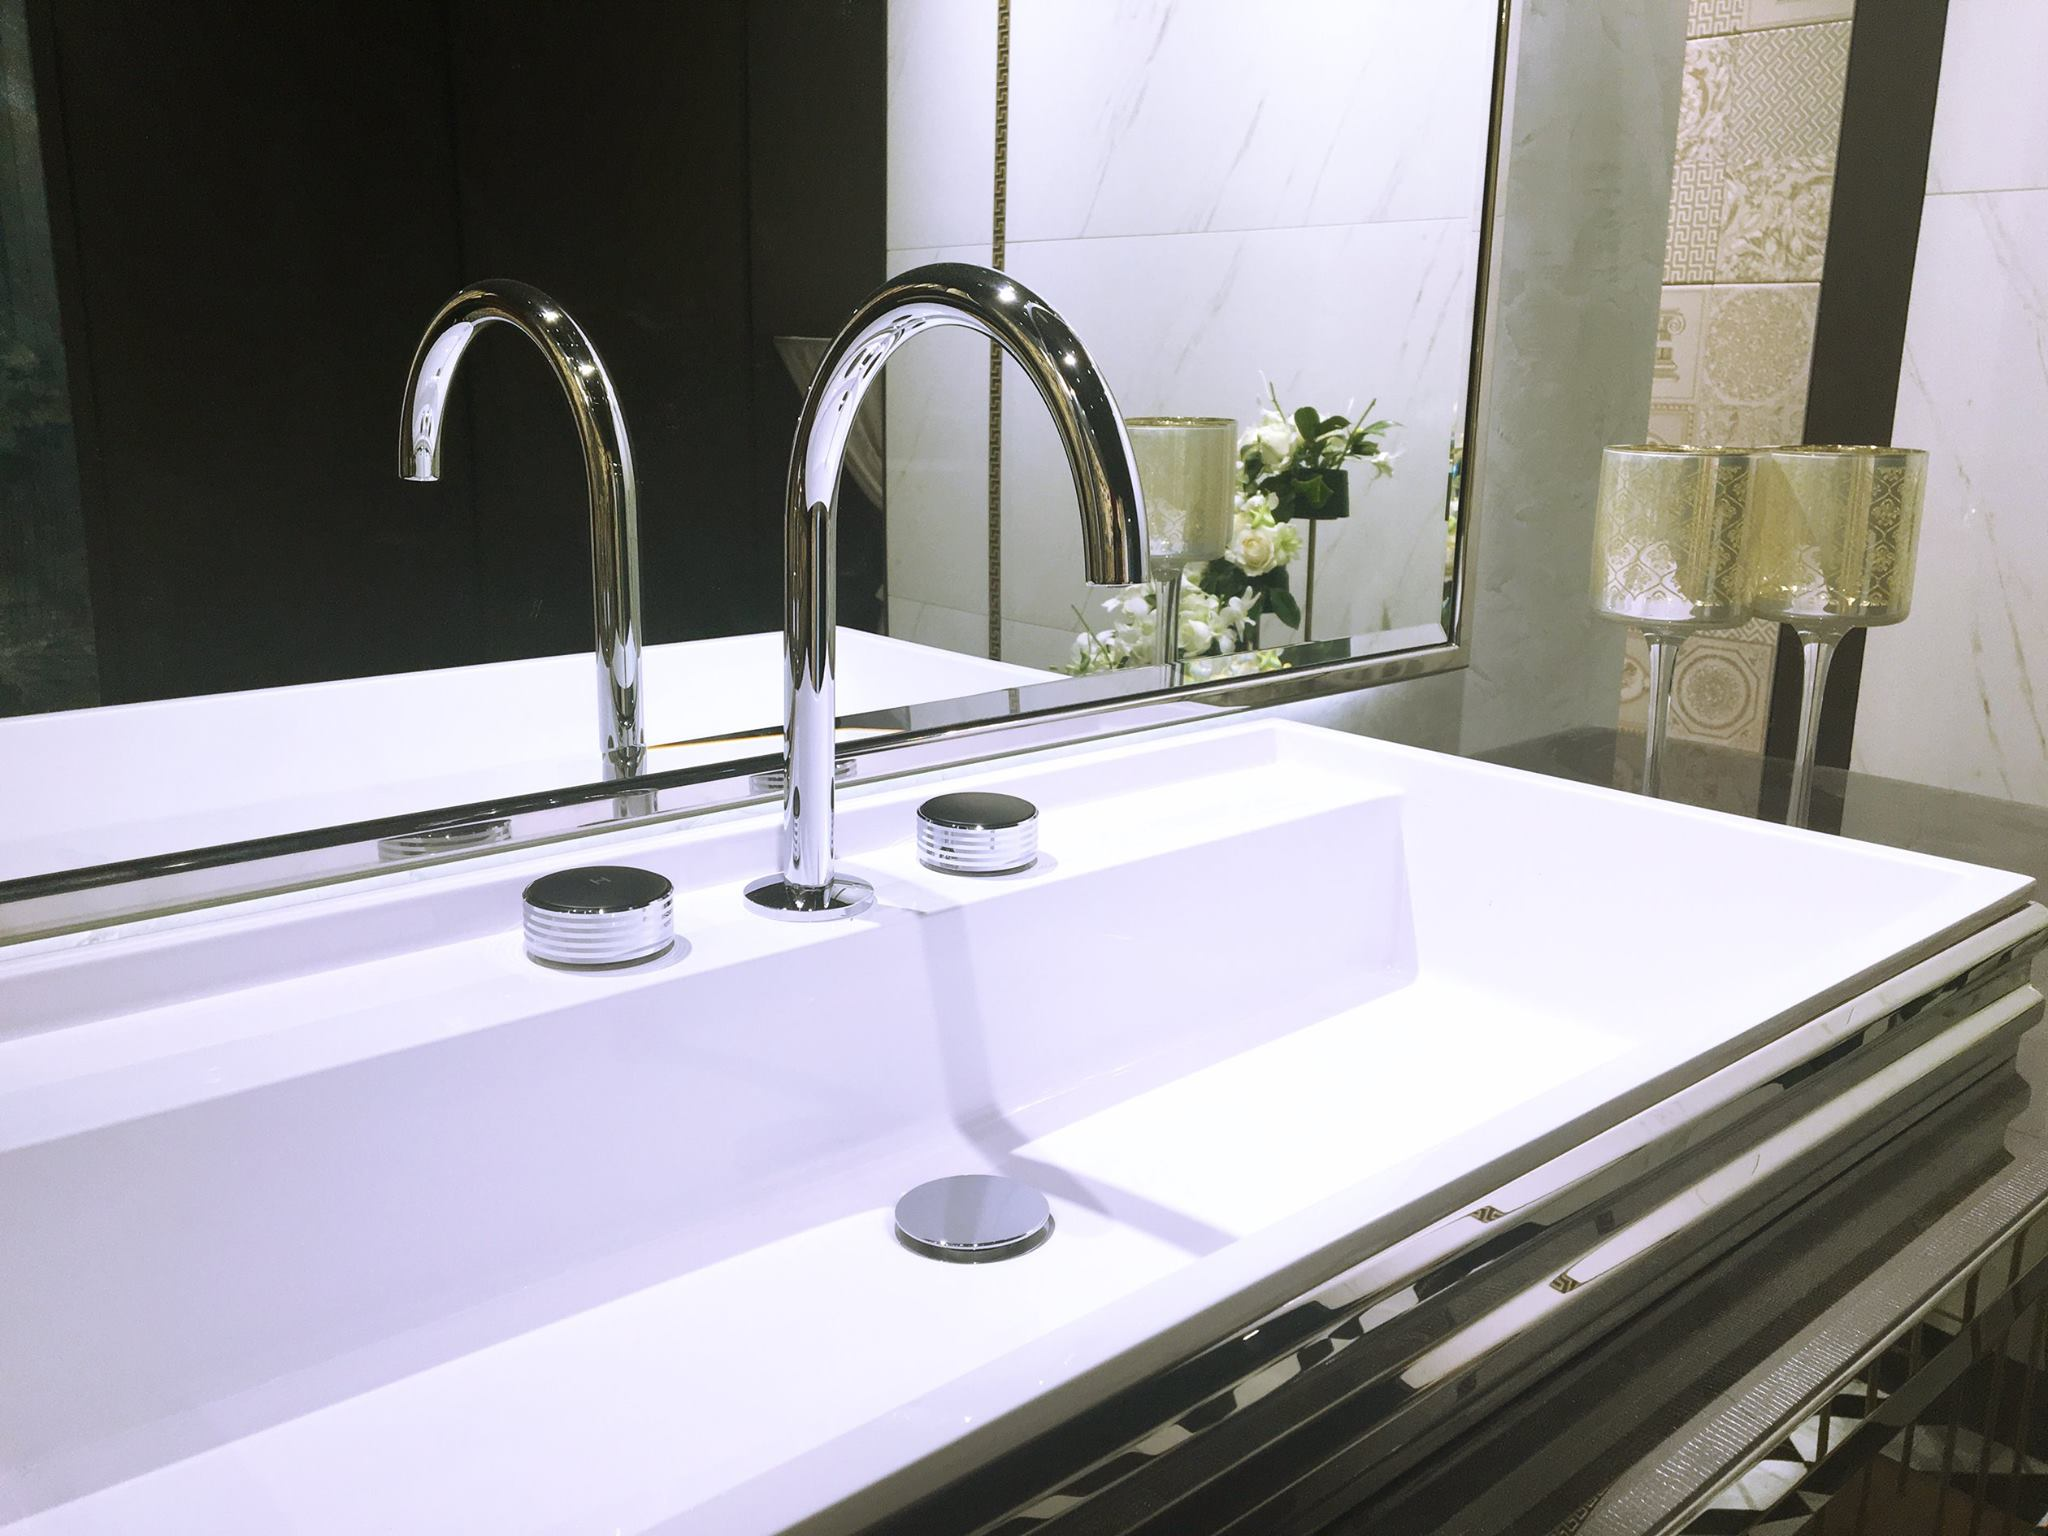 Marvelous ... Carlo Frattini, The Leading Collection For The Contract Sector, Fima  Aqua Code, The Line Of Products For The Bath And Shower Environment, ...